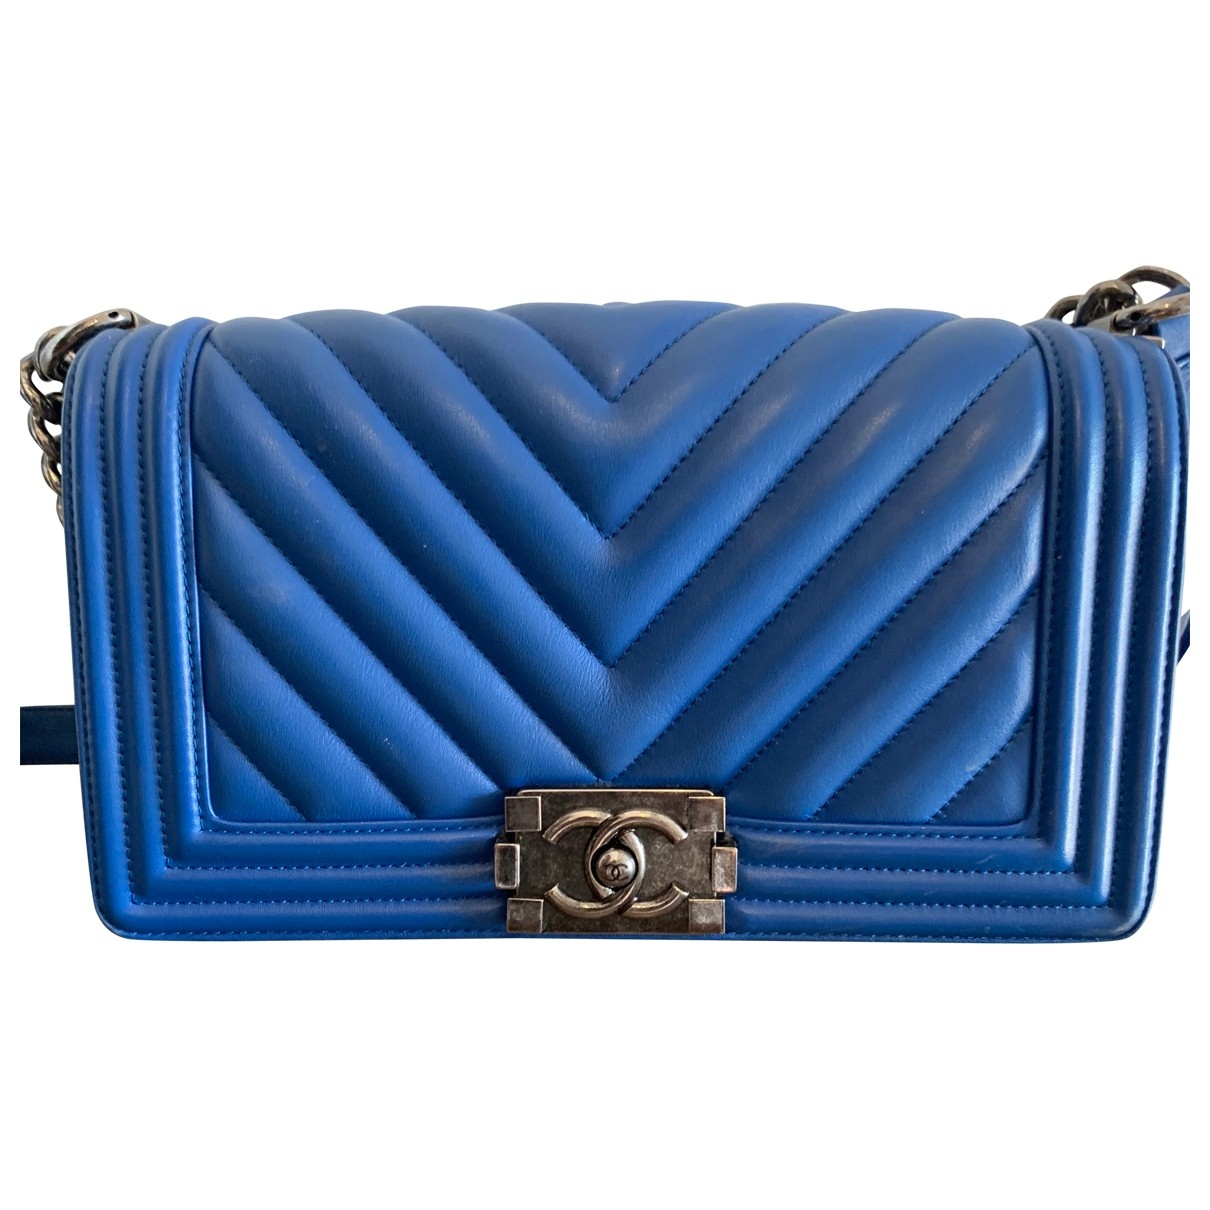 Chanel Boy Handtasche in  Blau Leder